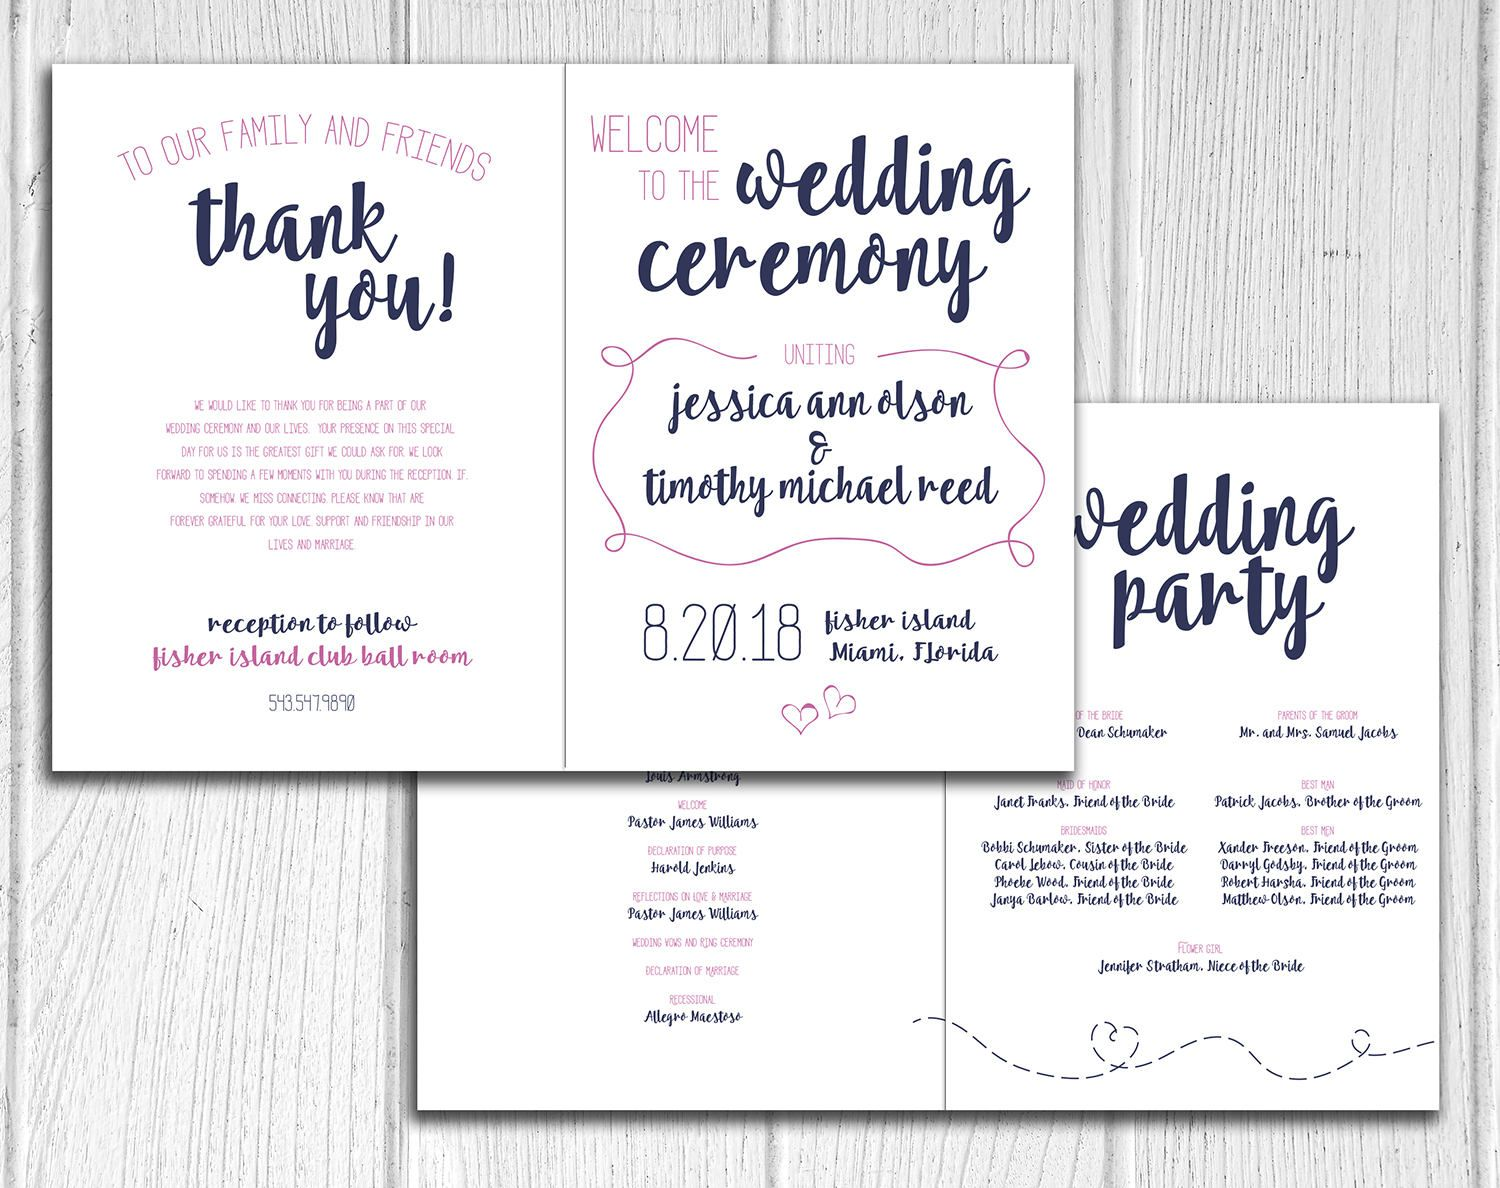 Paper Airplane Design Bifold Wedding Program Marriage Ceremony Programs Modern Navy And Fuchsia Hand Drawn By Ivoryisledesigns On Etsy